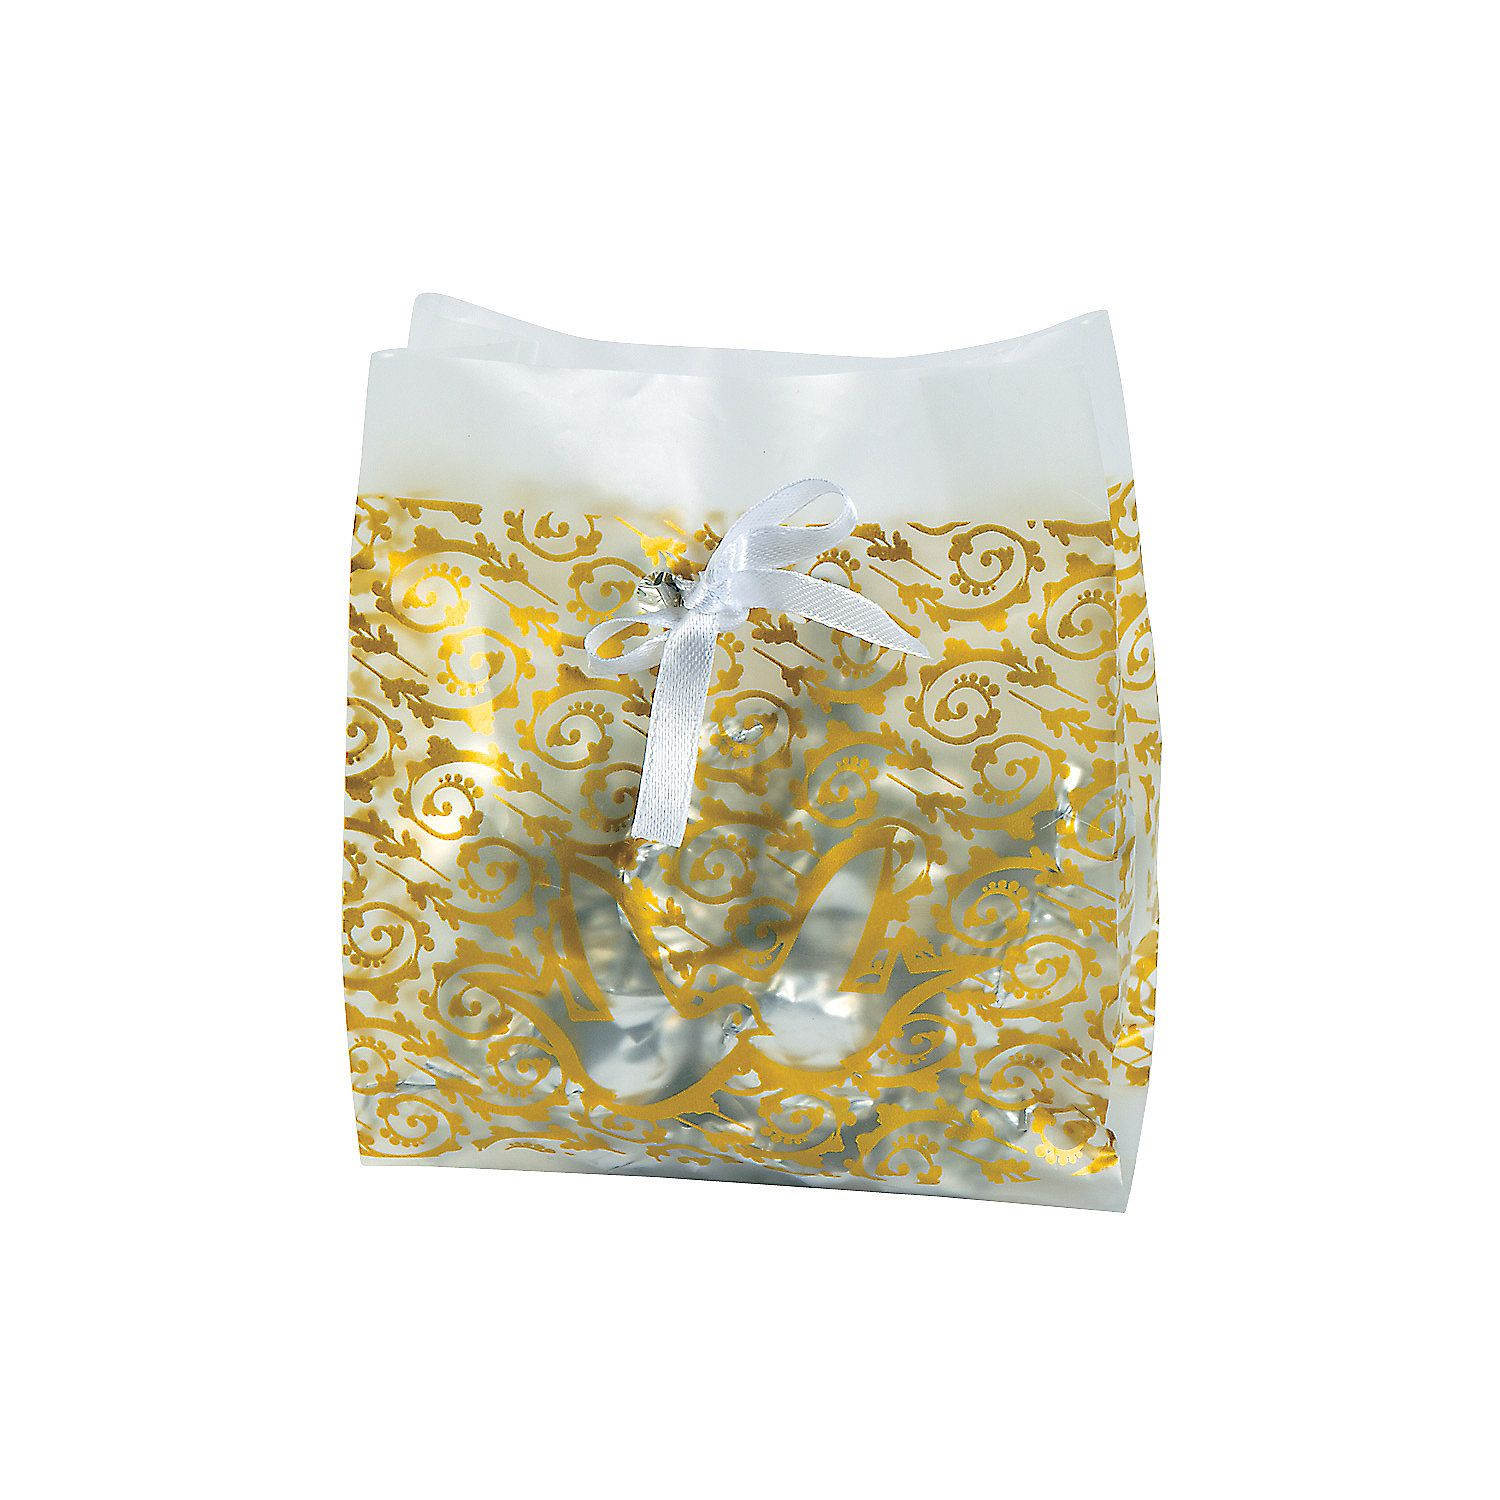 Frosted Gold Wedding Favor Cellophane Bags | Gold wedding favors ...